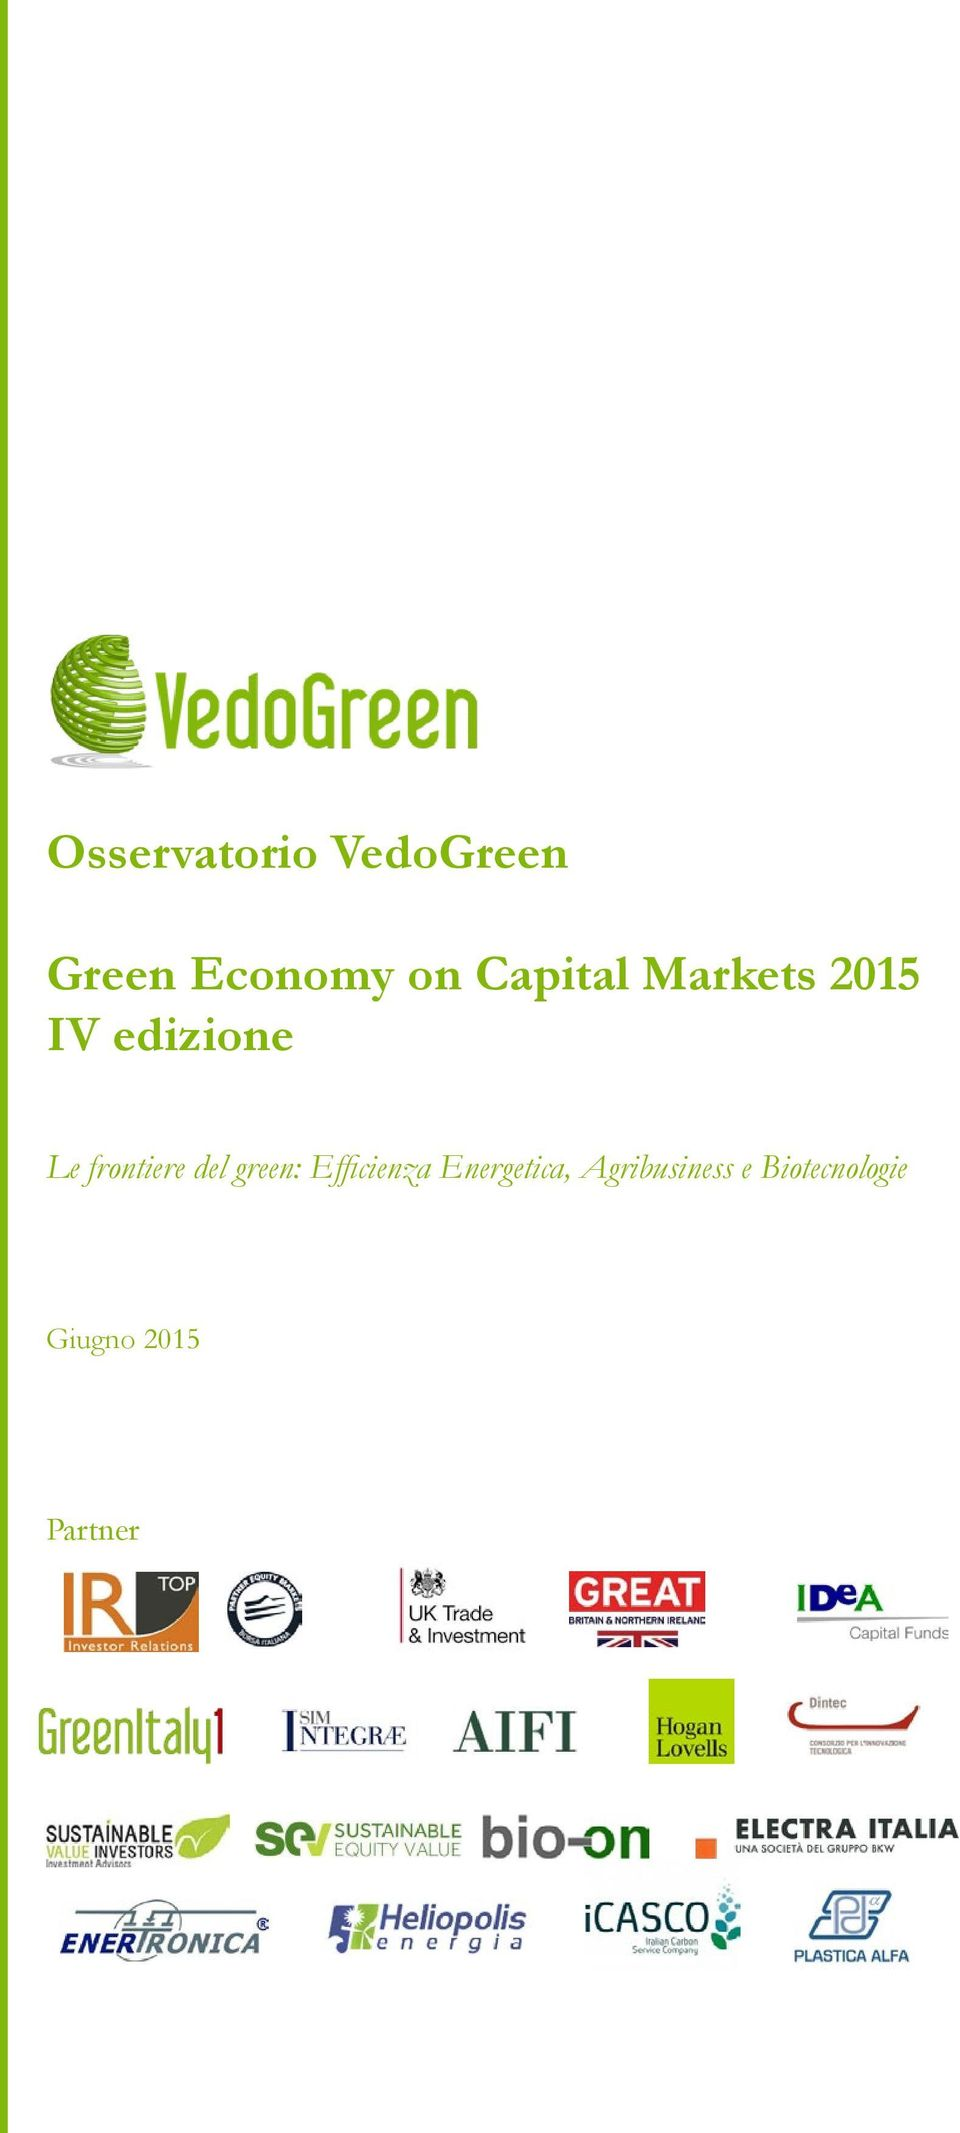 frontiere del green: Efficienza